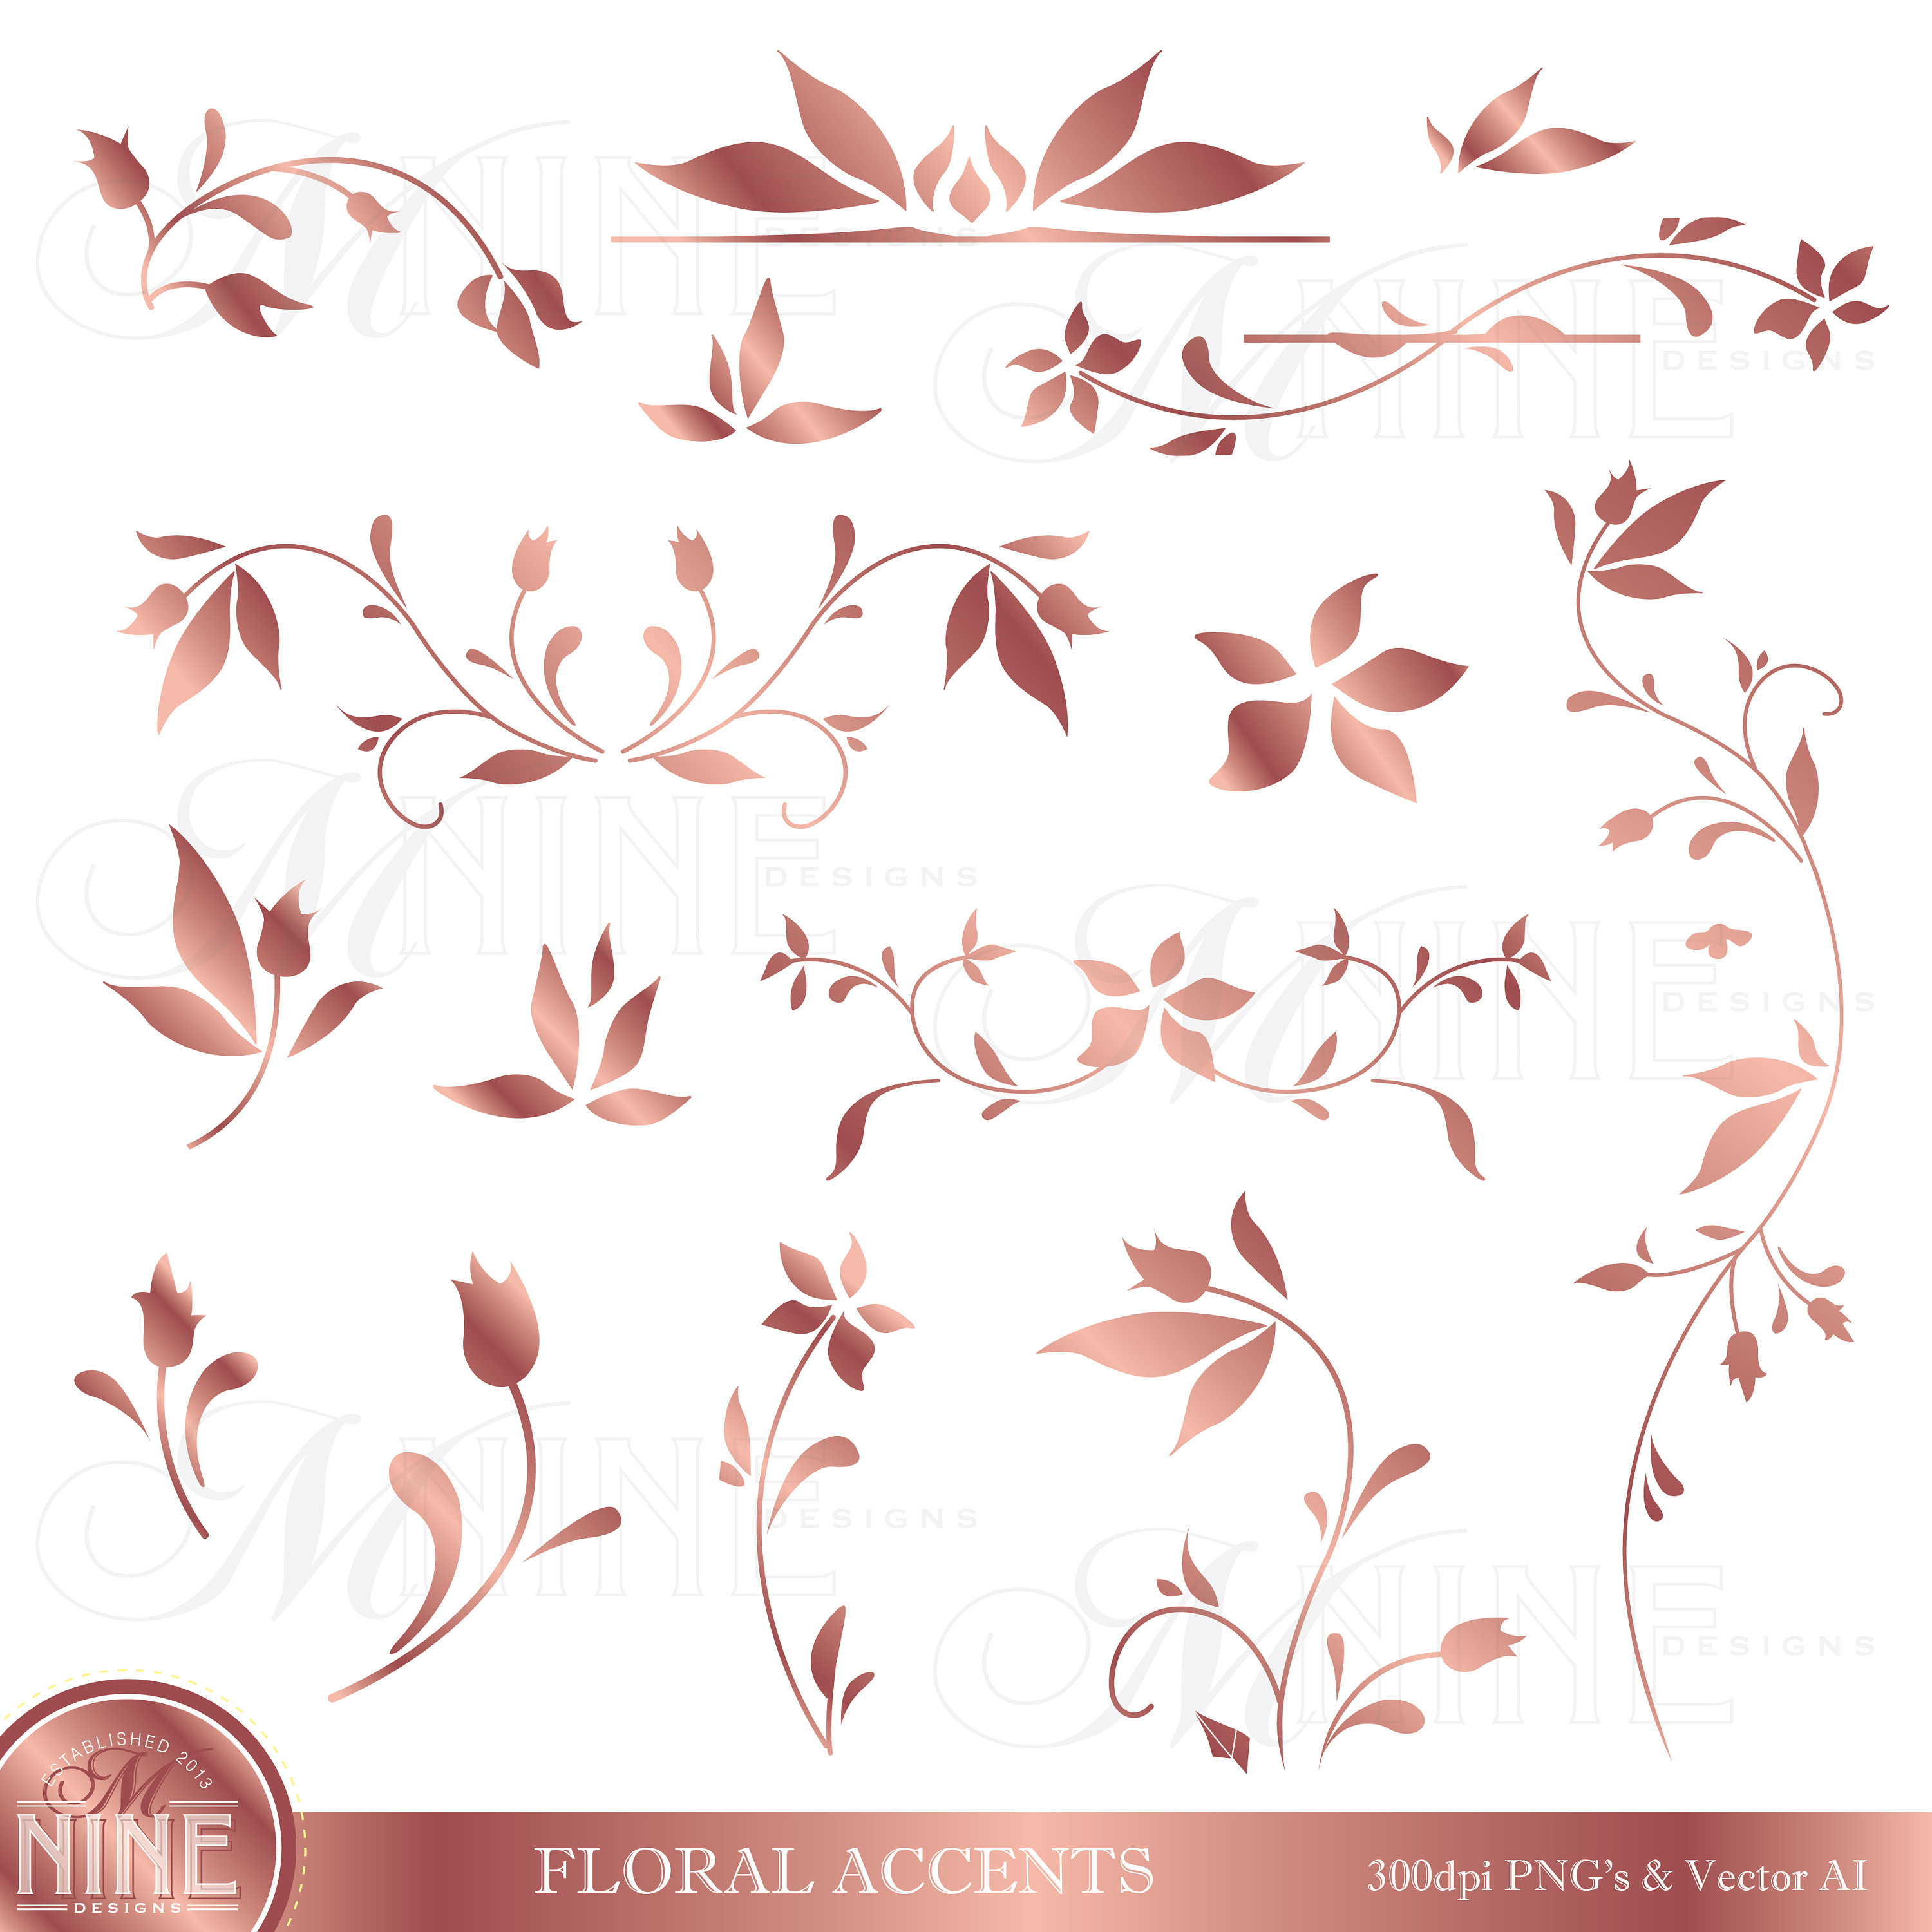 Rose Gold FLORAL ACCENTS Clipart.